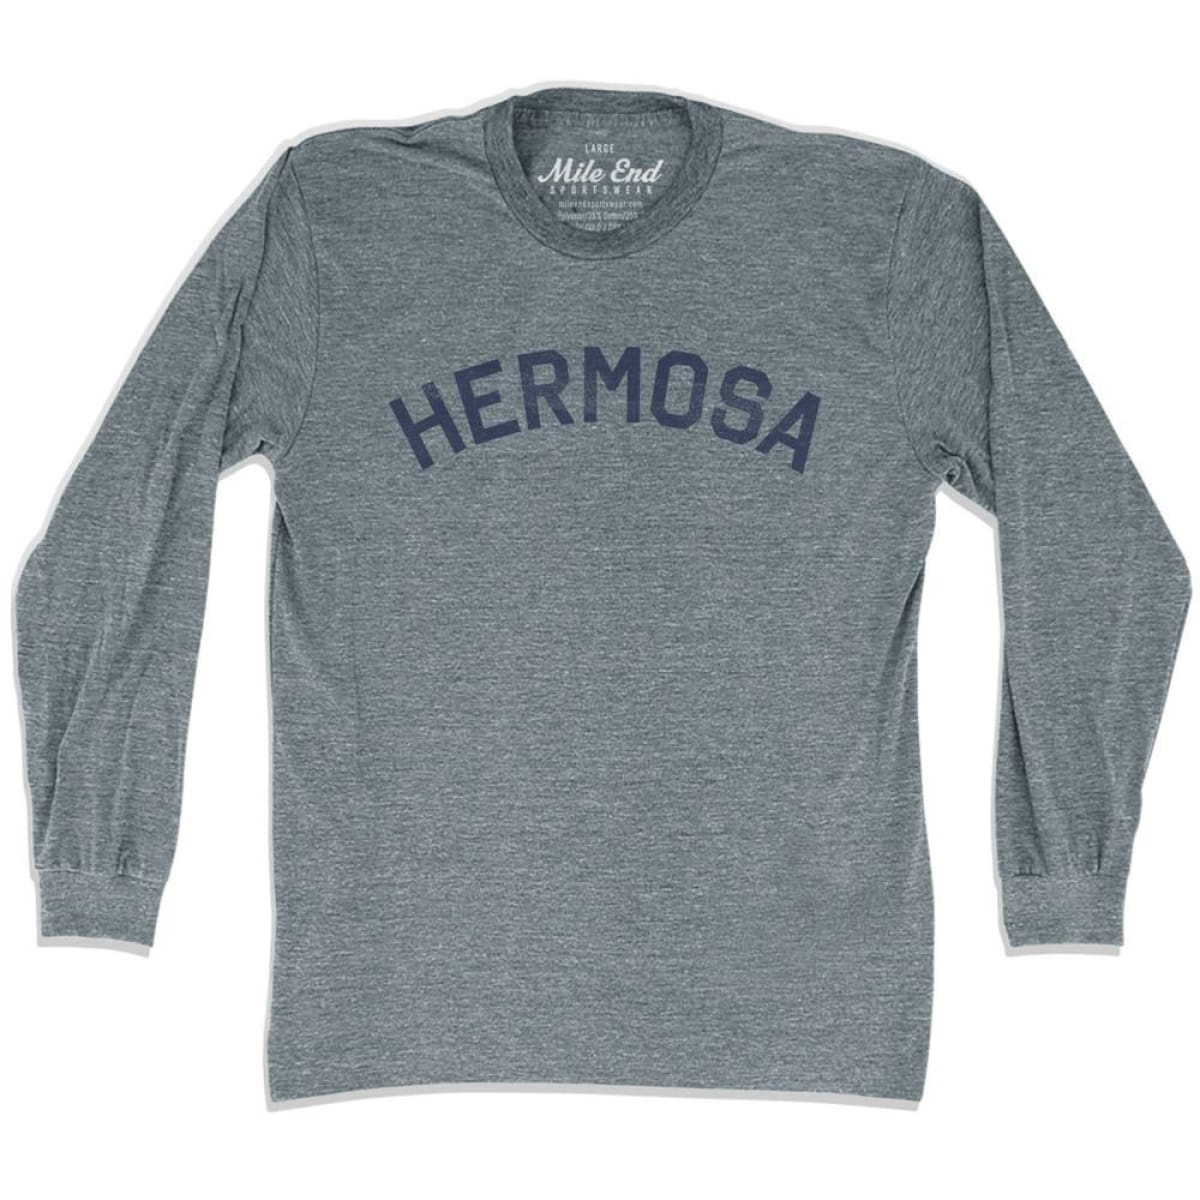 Hermosa City Vintage Long Sleeve T-Shirt - Athletic Grey / Adult X-Small - Mile End City